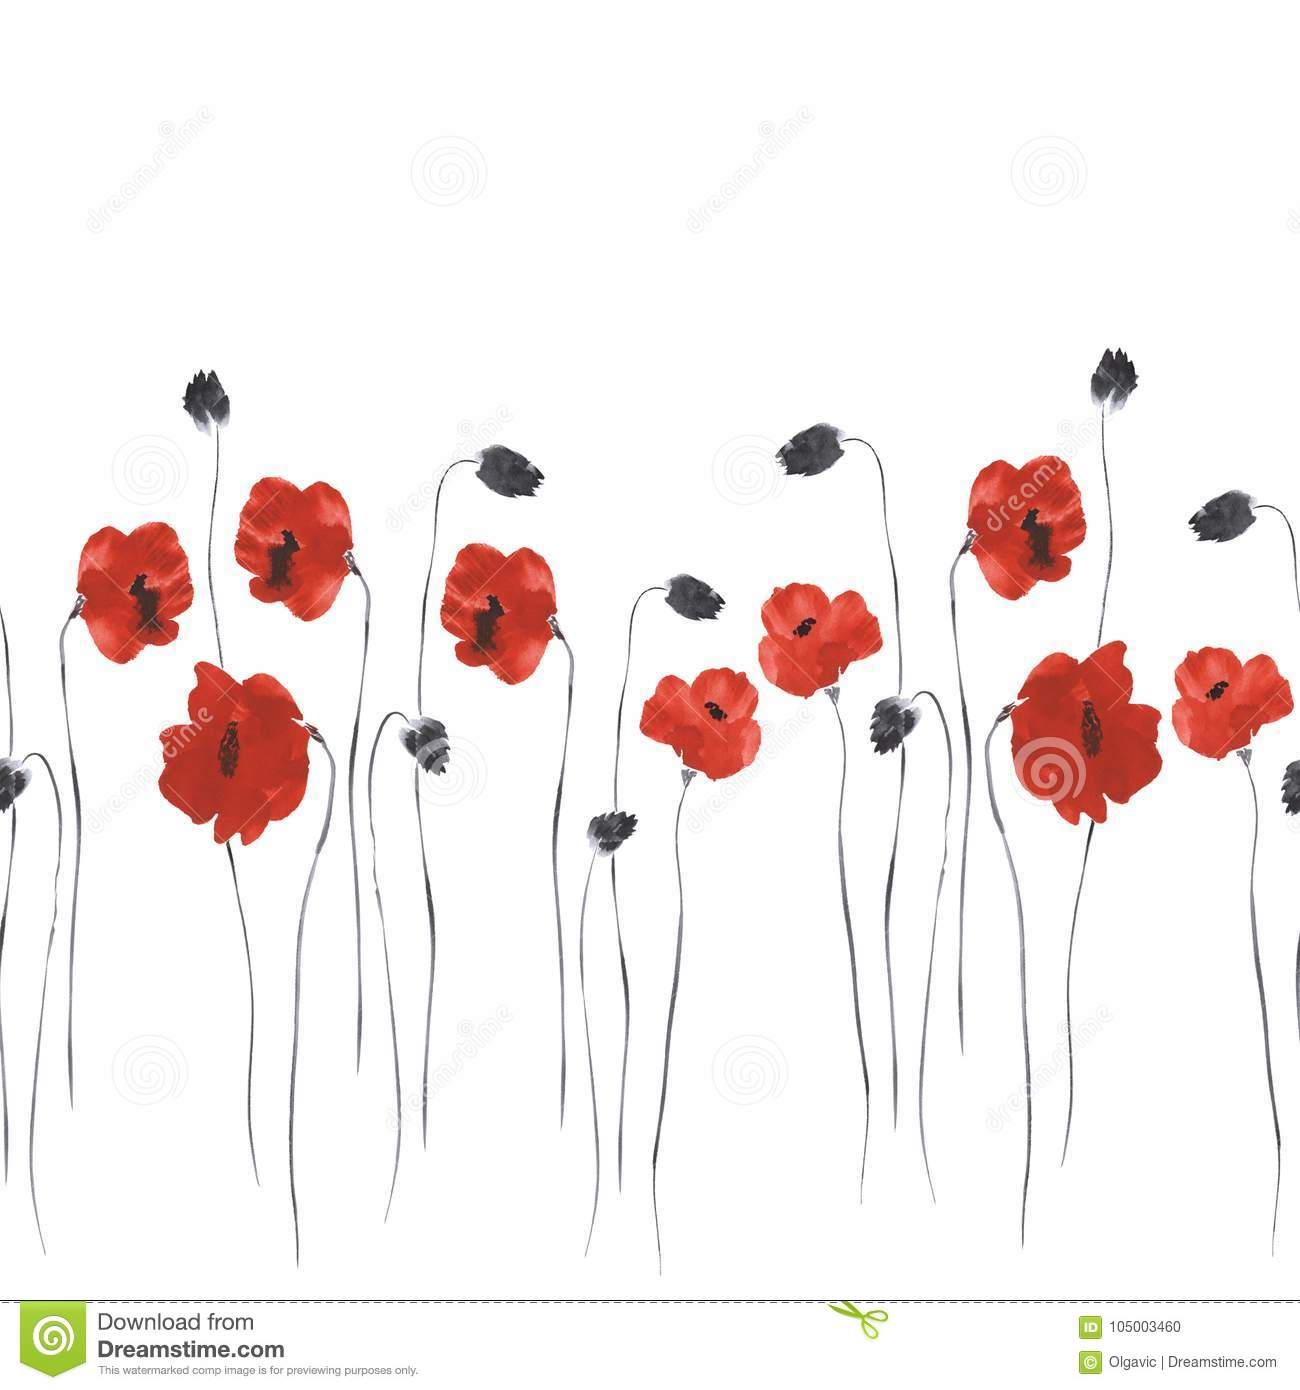 Seamless pattern of red flowers of poppies on a white background seamless pattern of red flowers of poppies on a white background watercolor 2 mightylinksfo